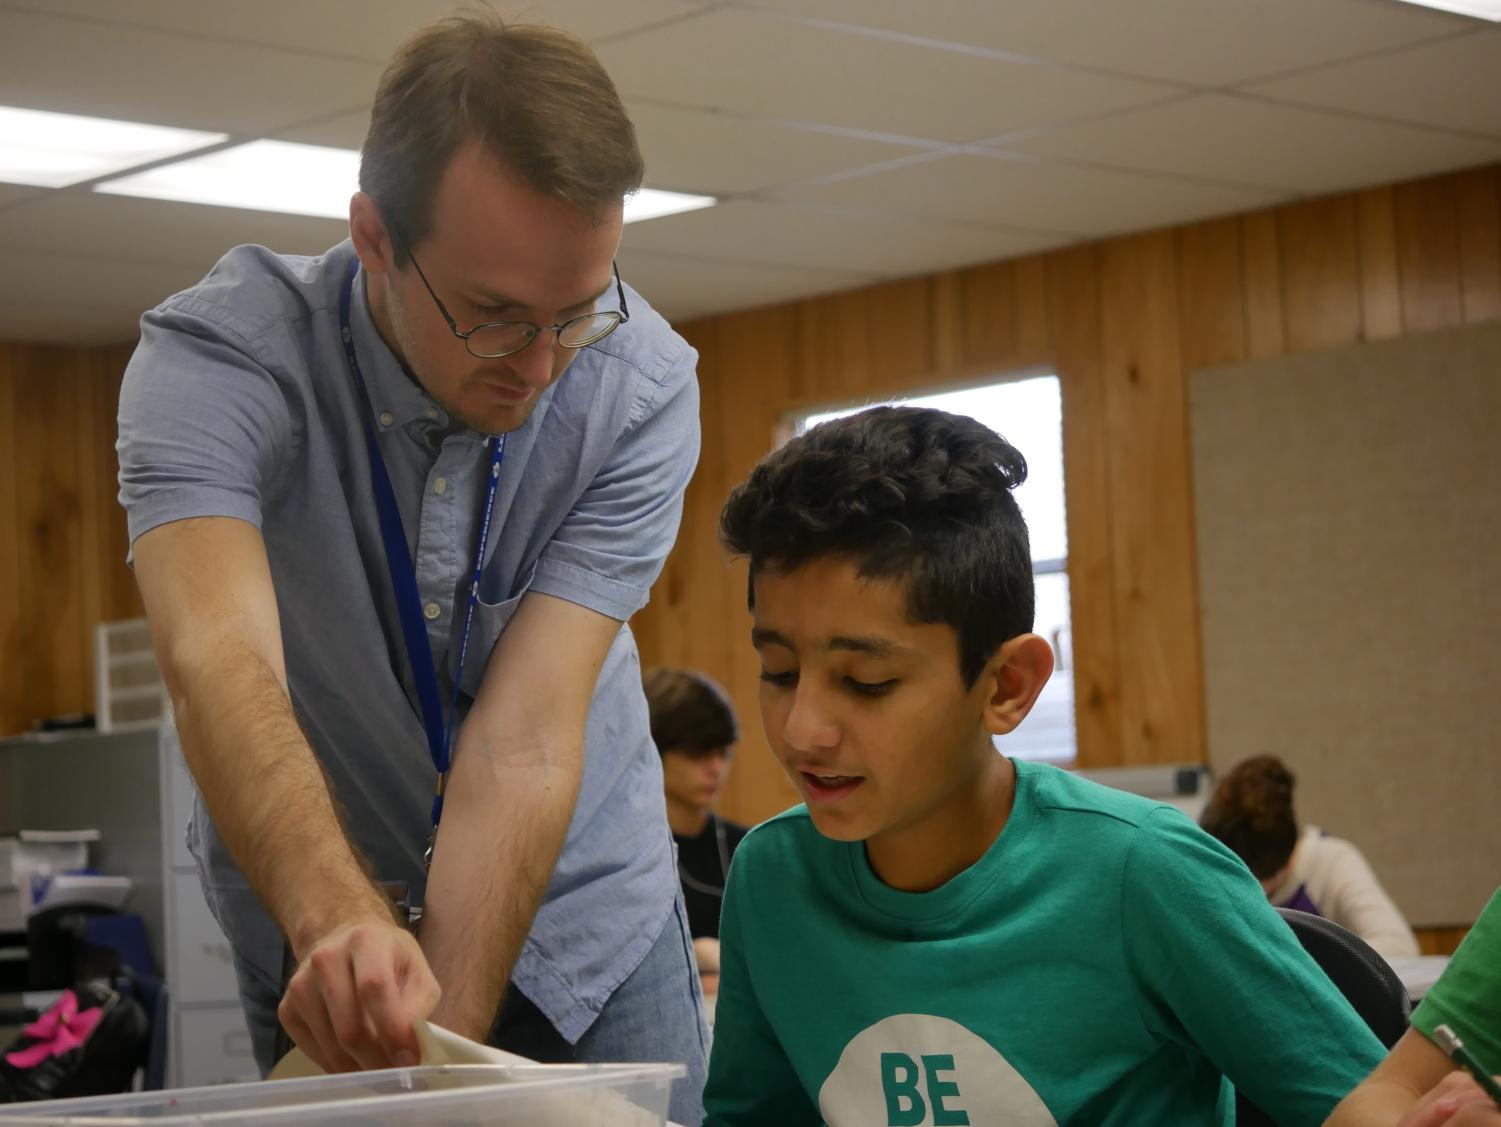 Andrew Cooke works with a student in his first-period Art 1 class.  Cooke was a teacher aide at McCallum last year, and now teaches Commercial Photography 1 and Art 1 full time. He plans to expand into Advanced Commercial Photography next year. Photo by Janssen Transier.